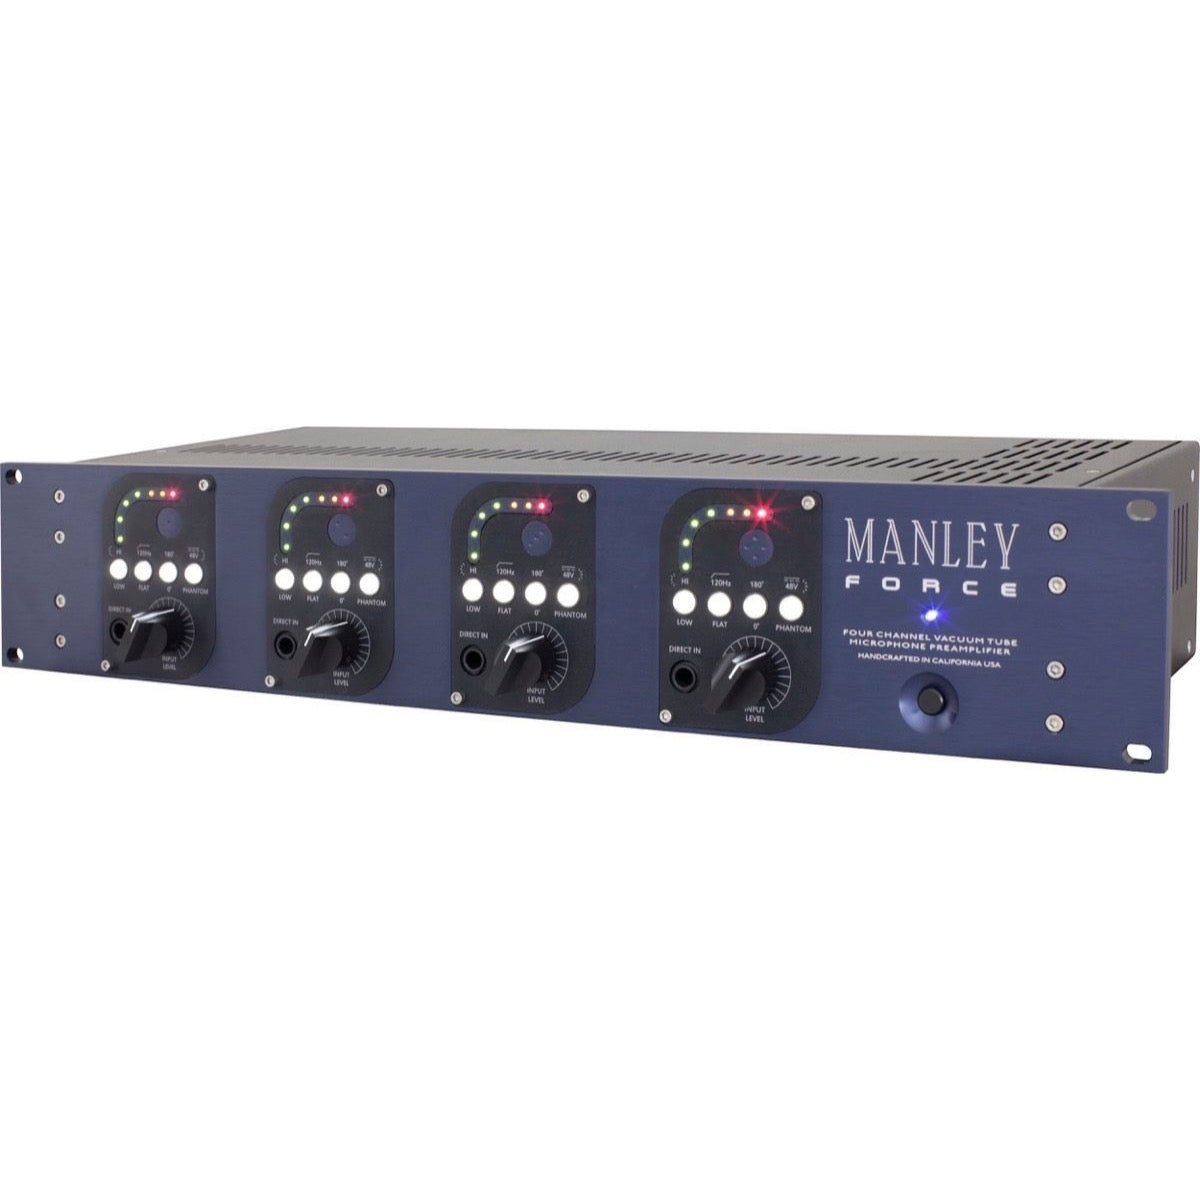 Manley Force Four-Channel Vacuum Tube Microphone Preamplifier